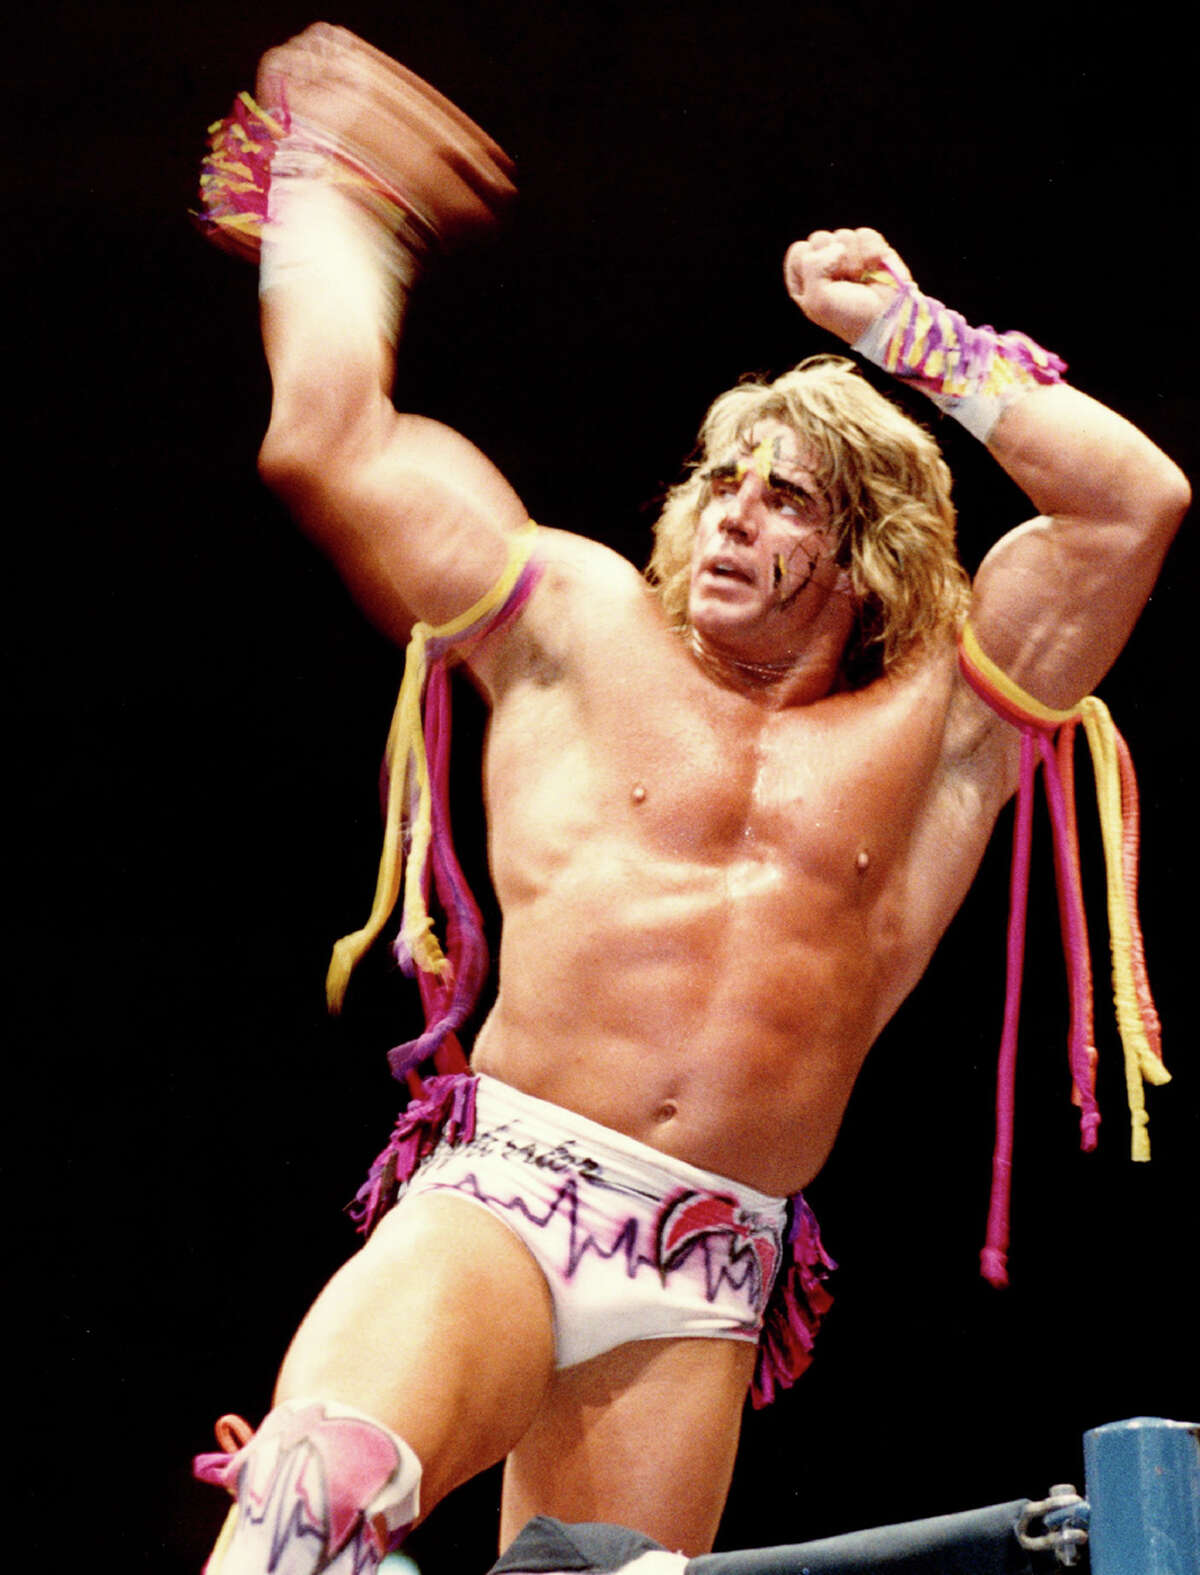 The Ultimate Warrior was a big WWE star in the '80s and '90s. He reportedly retired from wrestling in 1999.